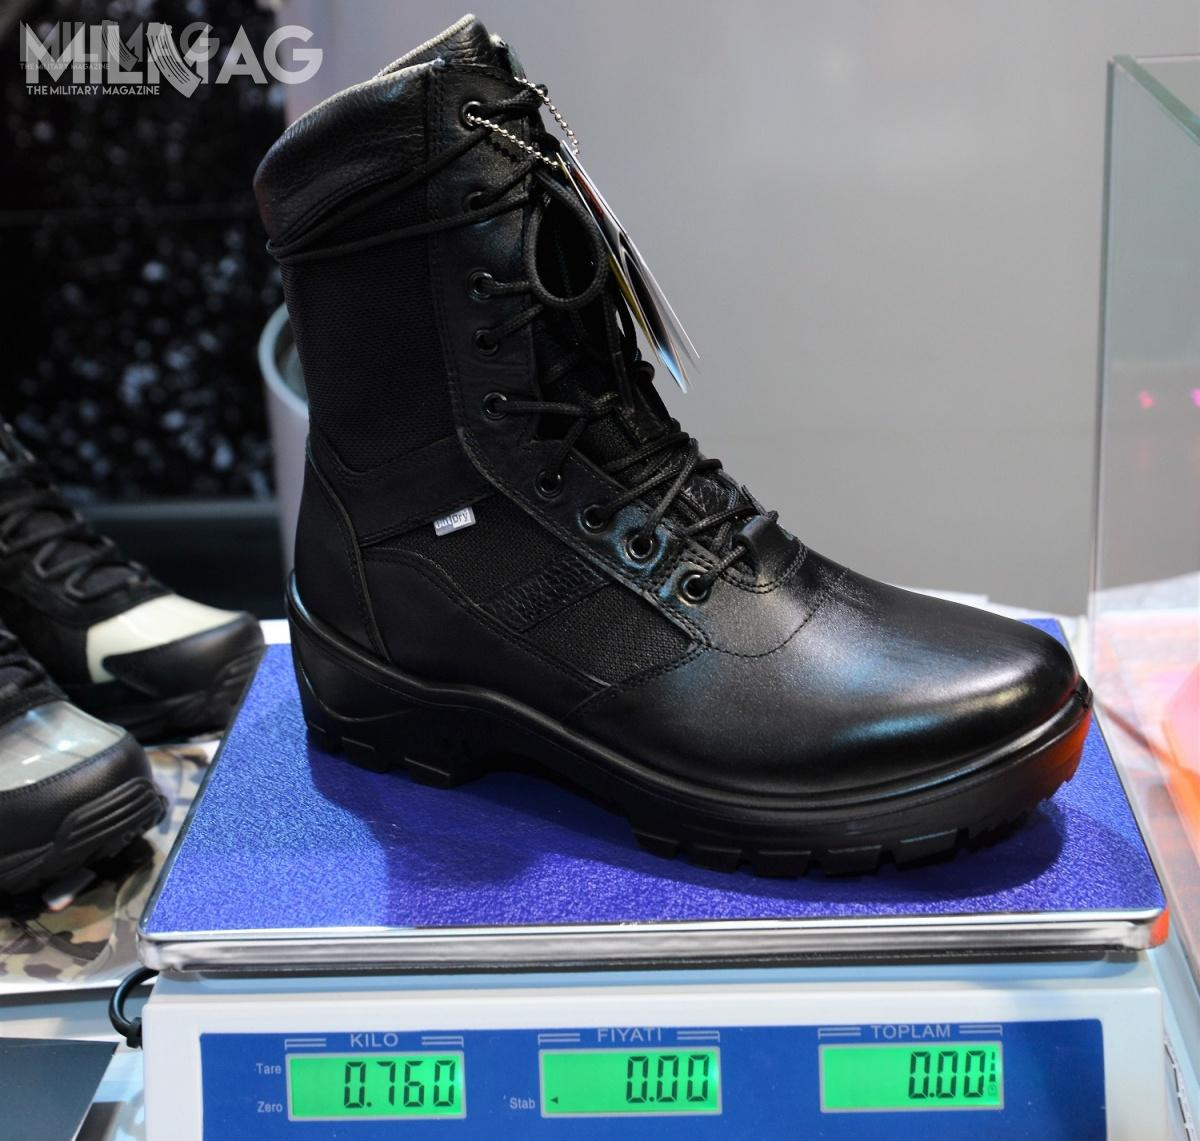 Manufacturer assures that Chivalry combat boot weights 760 g (26,8 oz) provides comfort for up to -38 °C